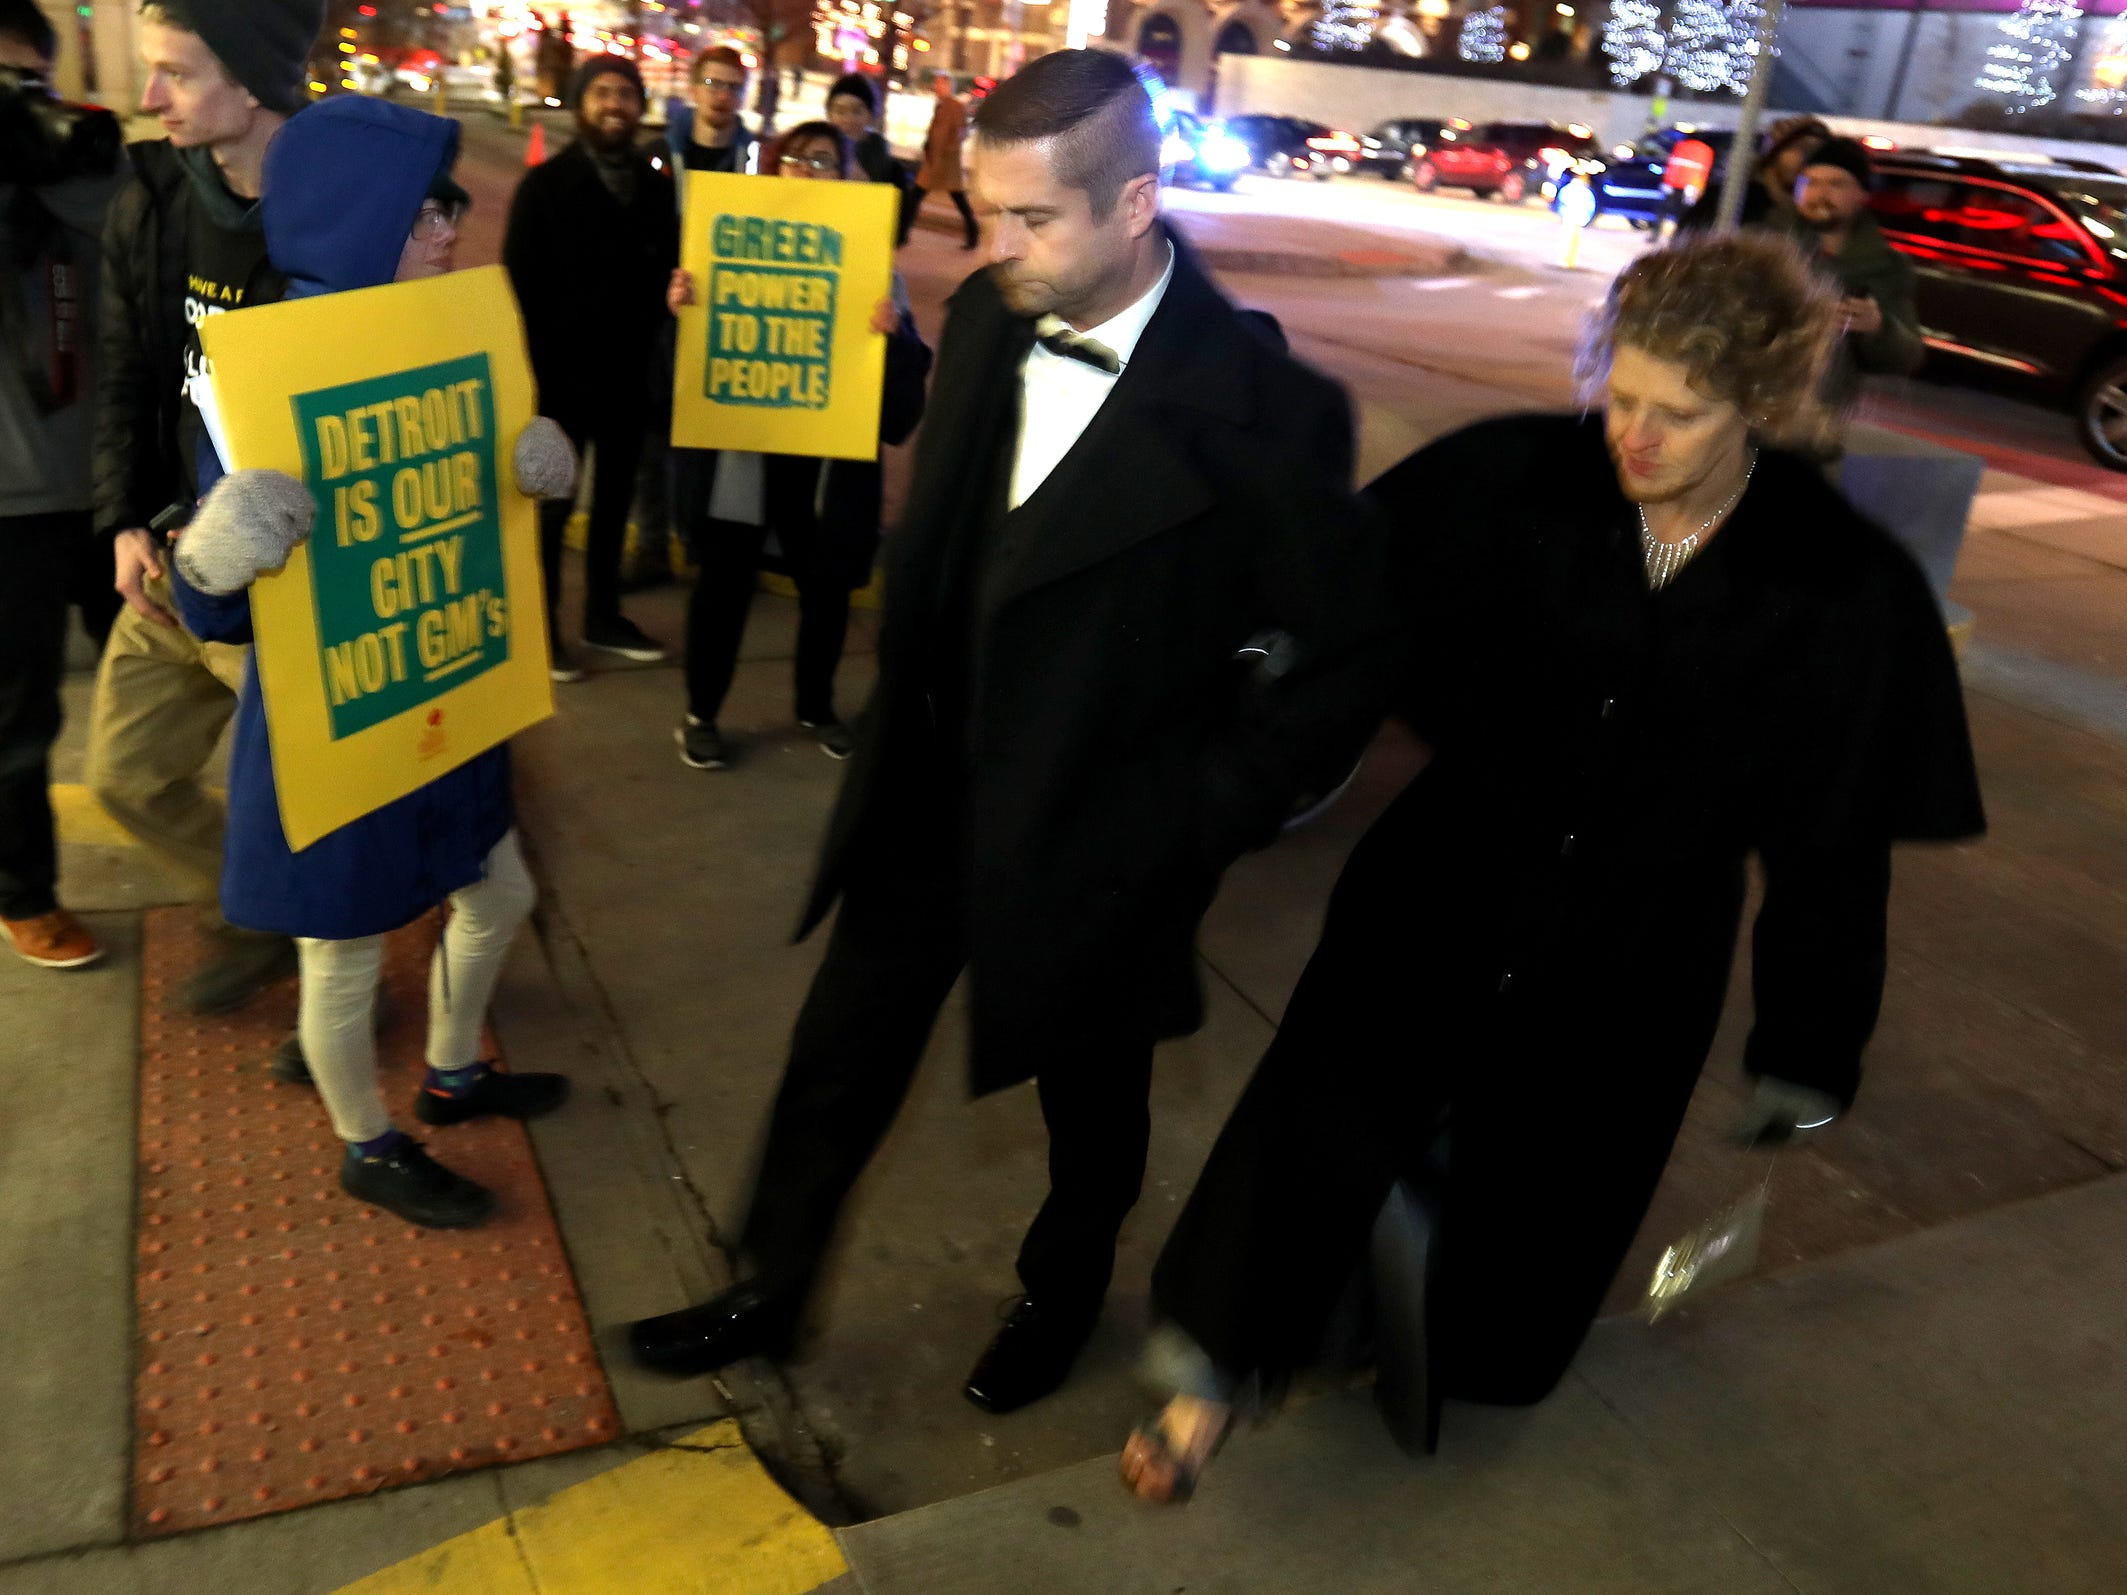 Attendees of the 2019 North American International Auto Show Charity Preview at Cobo Center quickly walk pass protestors and try to get into the event on Friday, January 18, 2019.